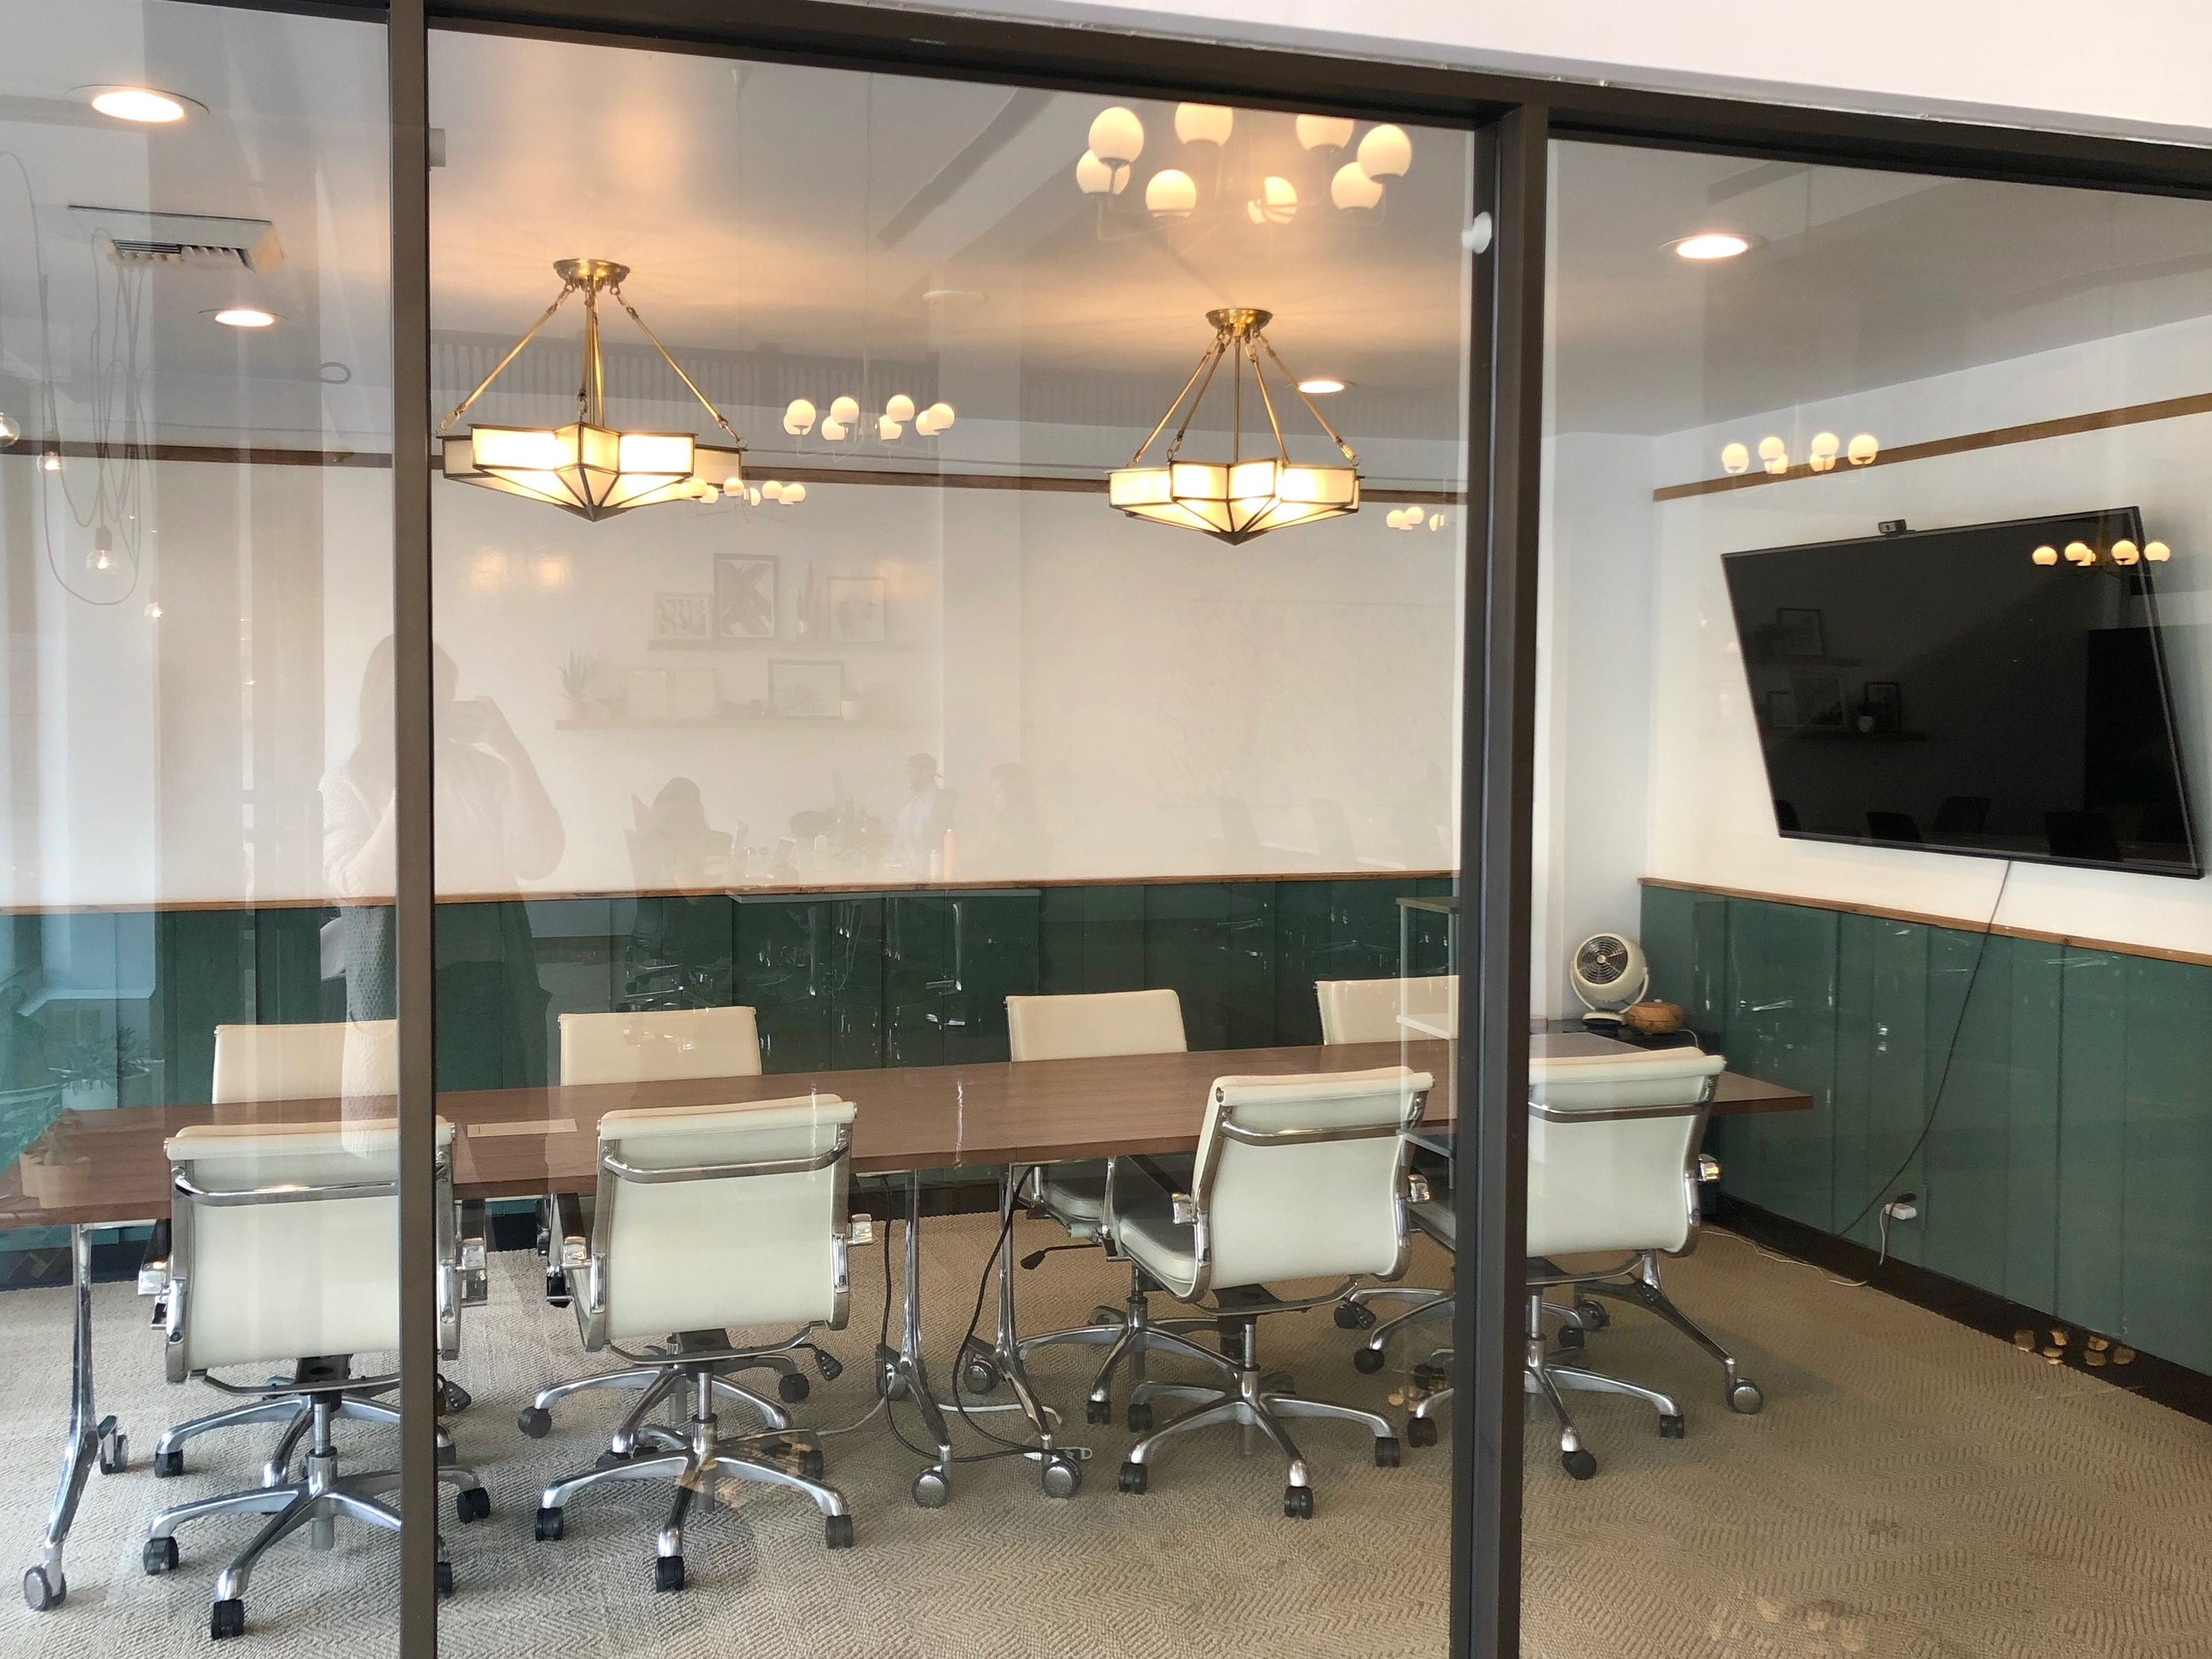 FULLERTON LARGE MEETING ROOM $80/HR - Seats up to 8 people65